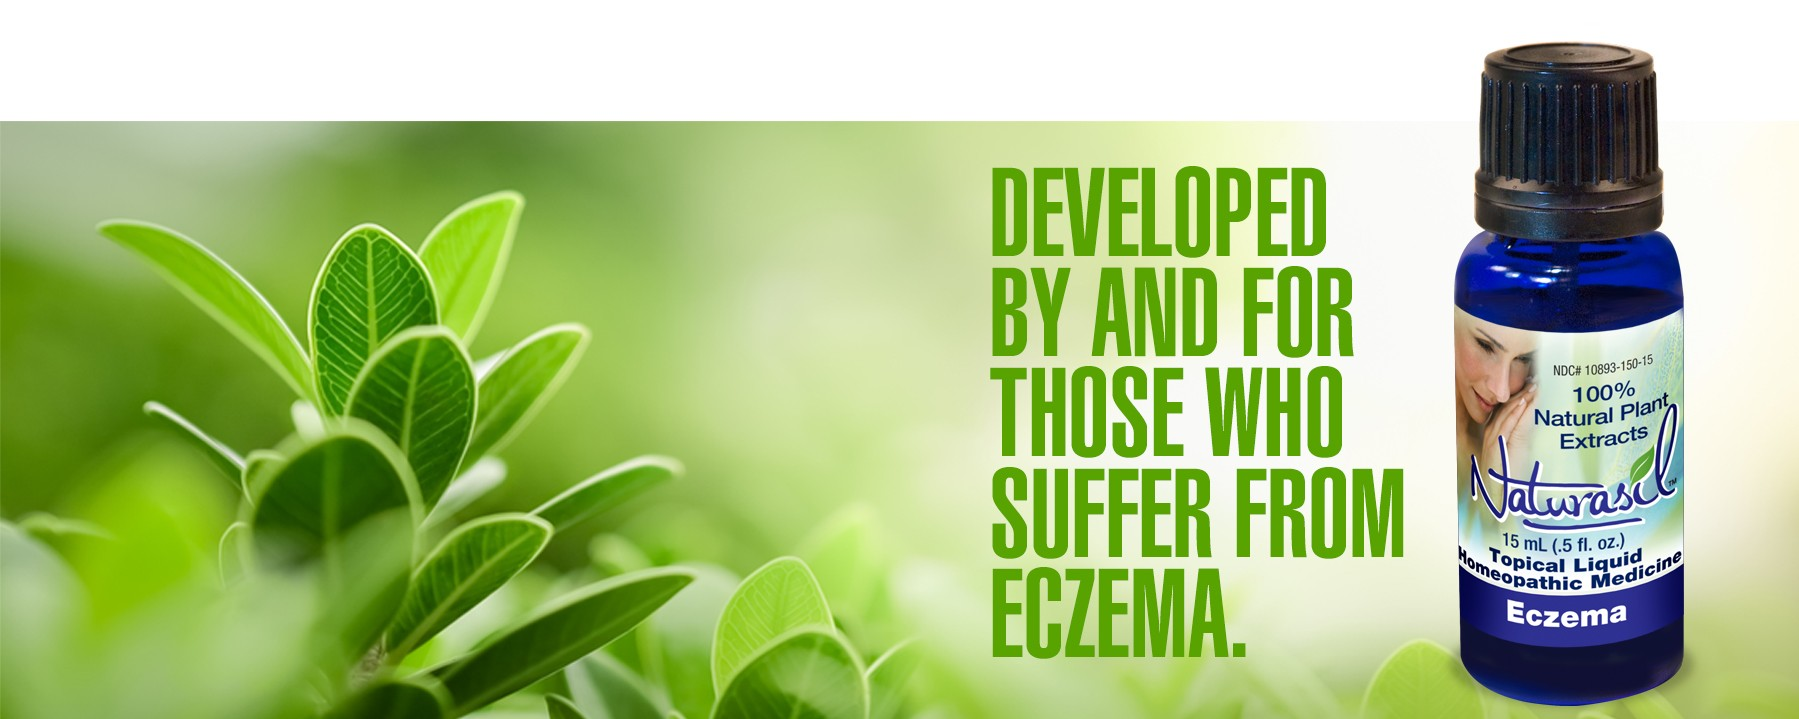 Naturasil Eczema relief-developed by those who suffer from eczema.